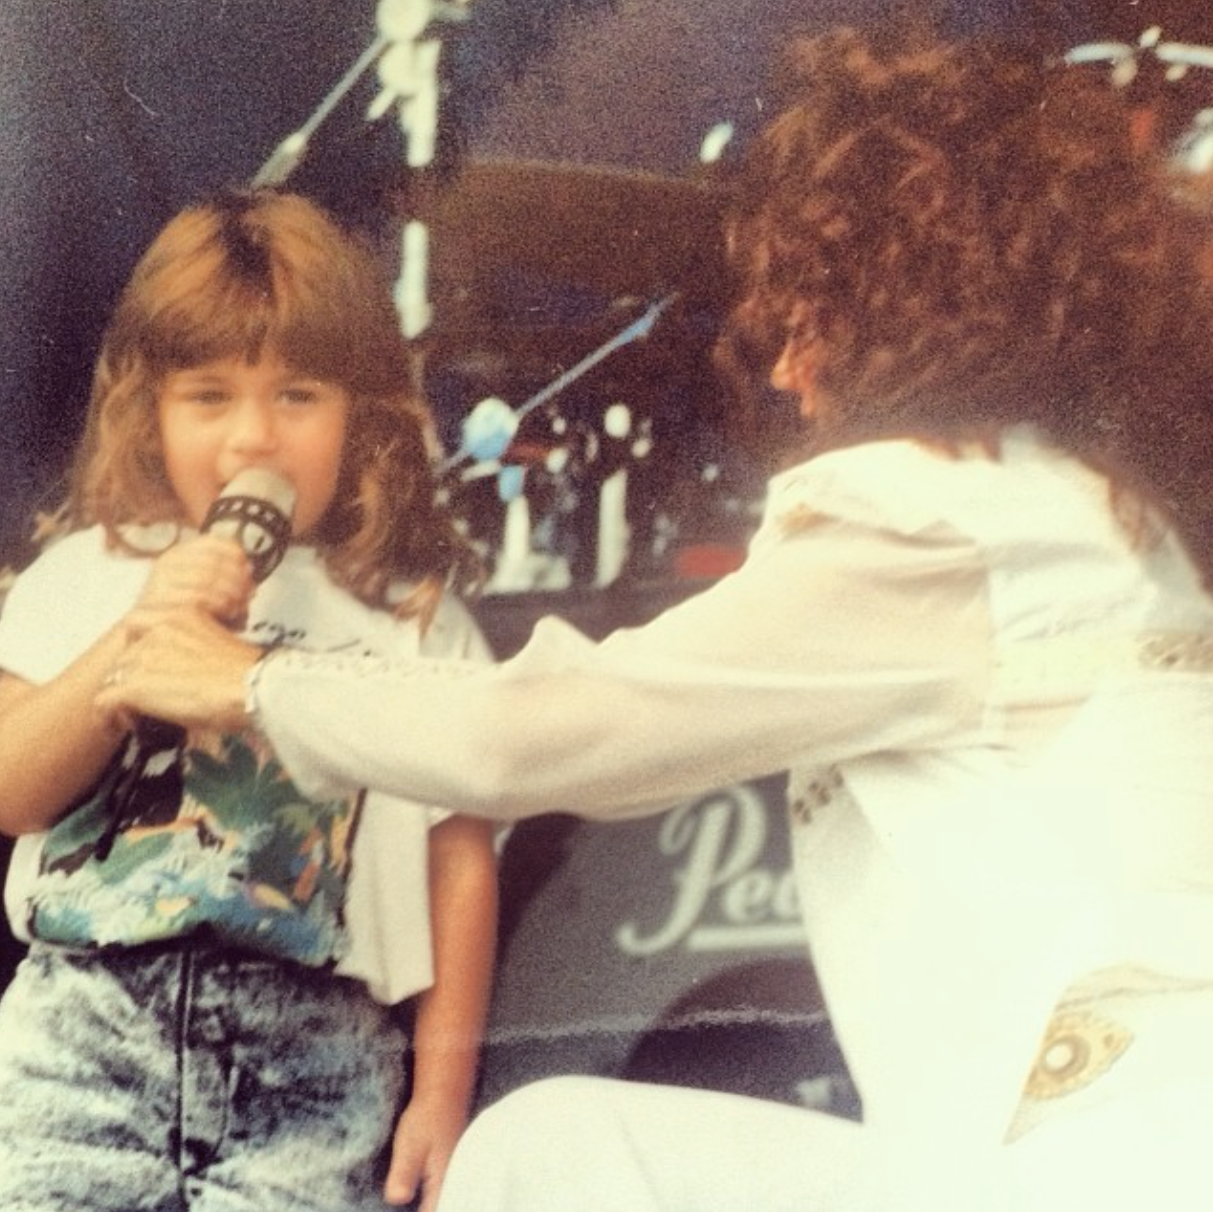 Singing somewhere on tour with momma!